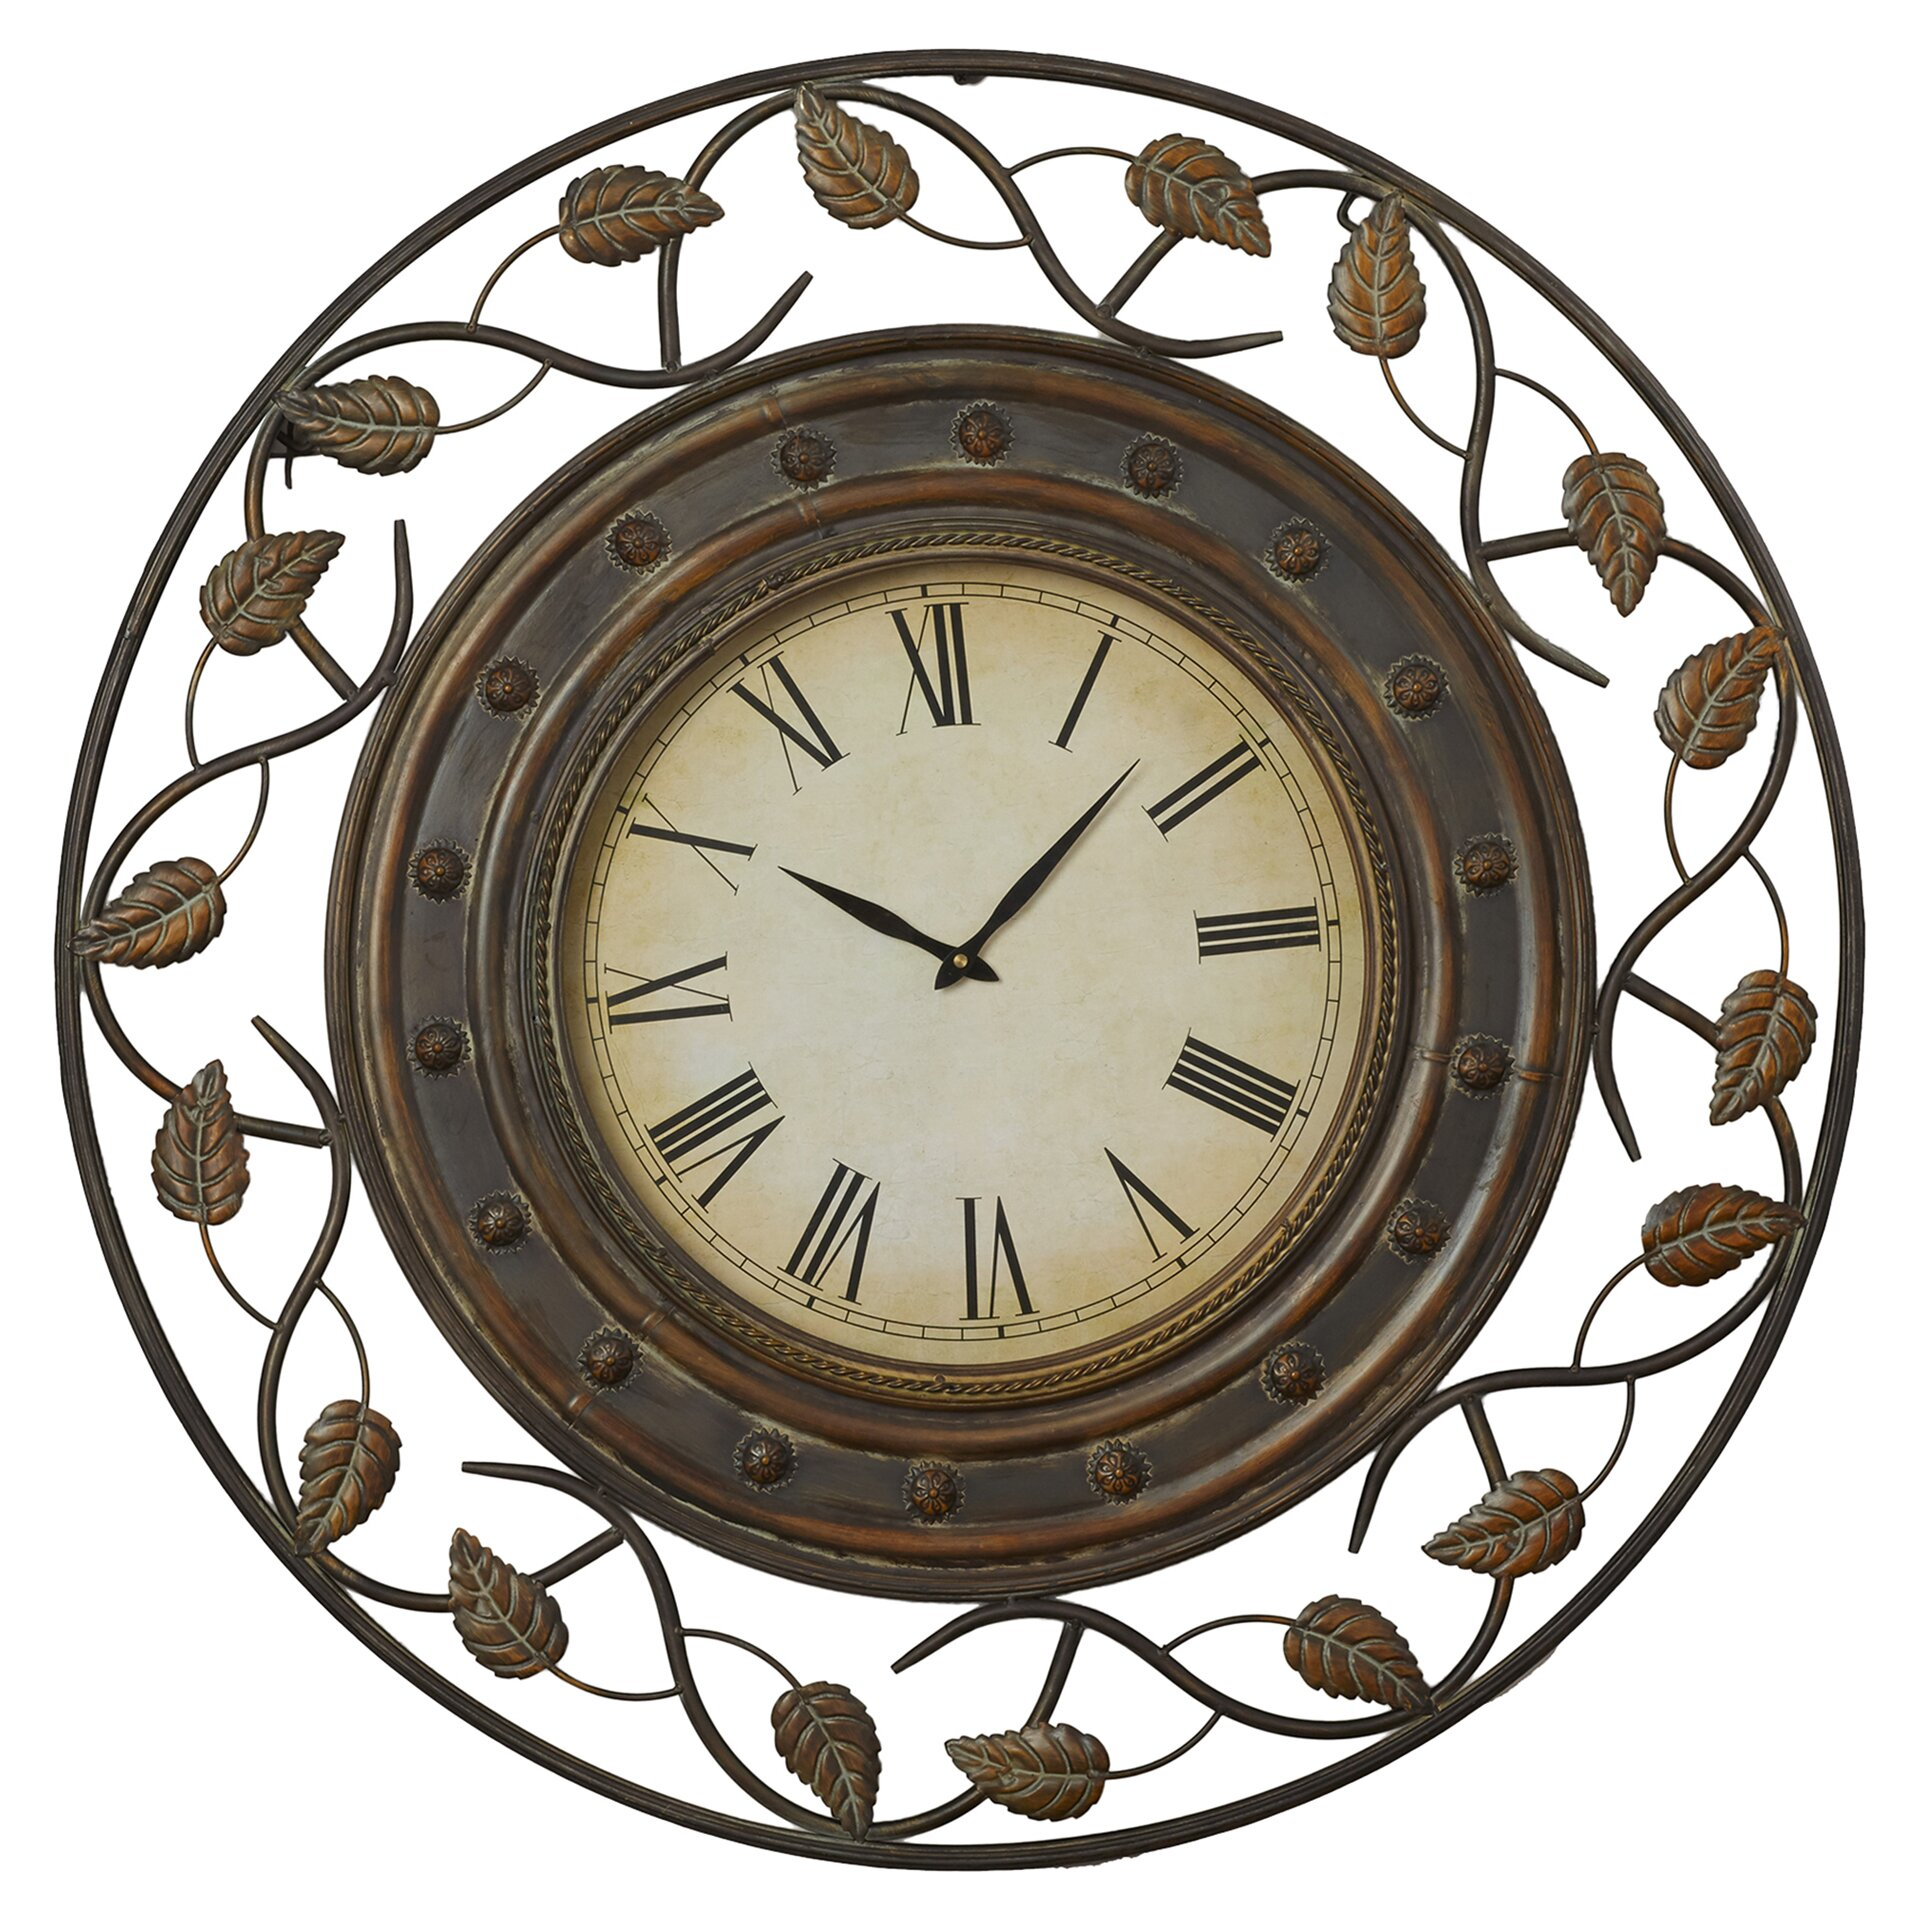 Decorative Wall Clock Model : Darby home co cleffort quot decorative wall clock reviews